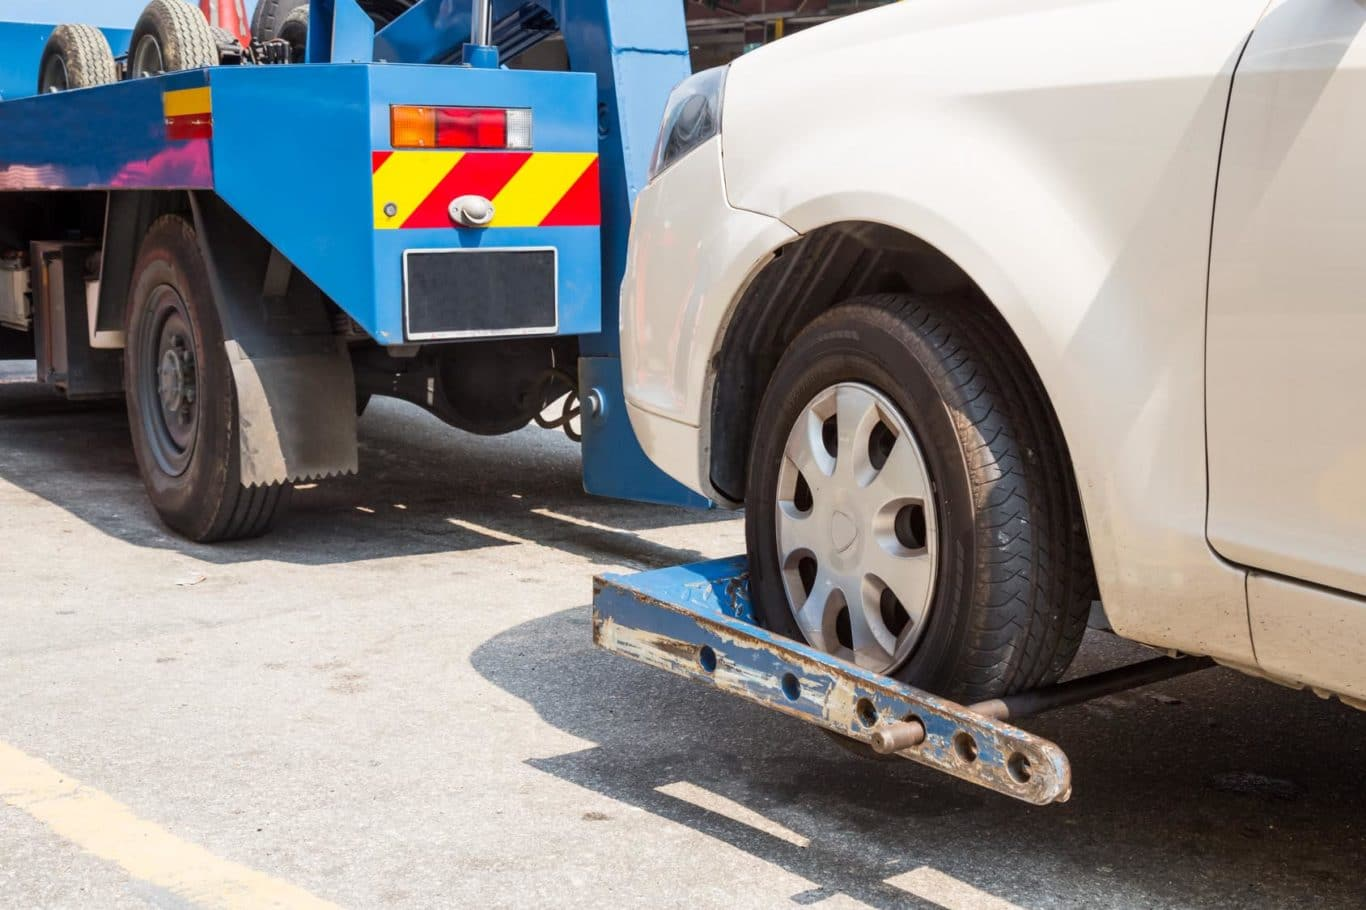 Firhouse expert Breakdown Recovery services